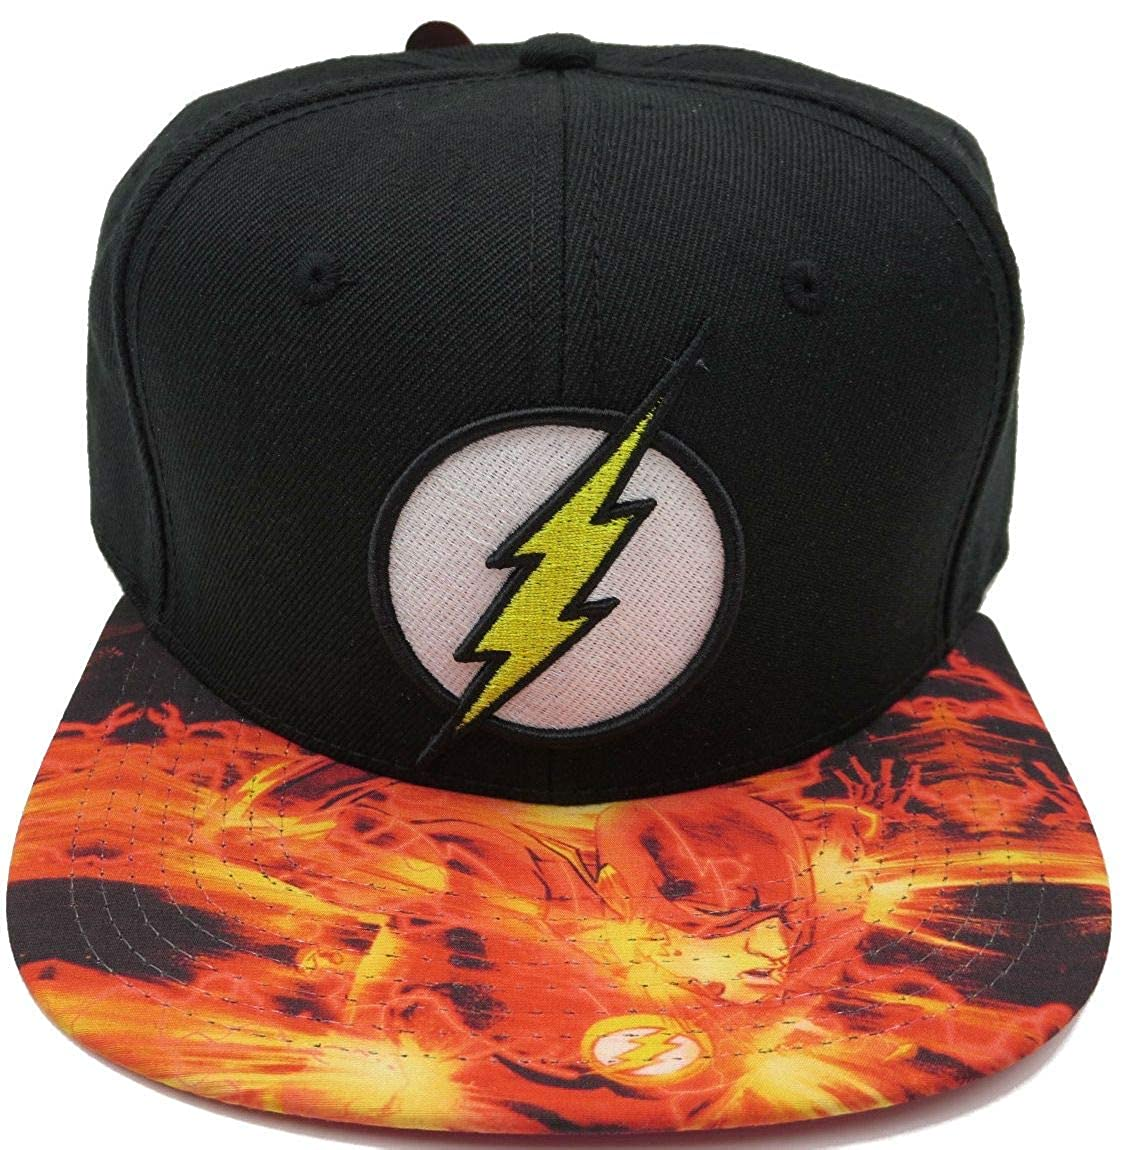 DC Comics The Flash Lightning Logo Sublimated Bill Snapback Baseball Cap BIOWORLD 00_QOPMZBSF_02